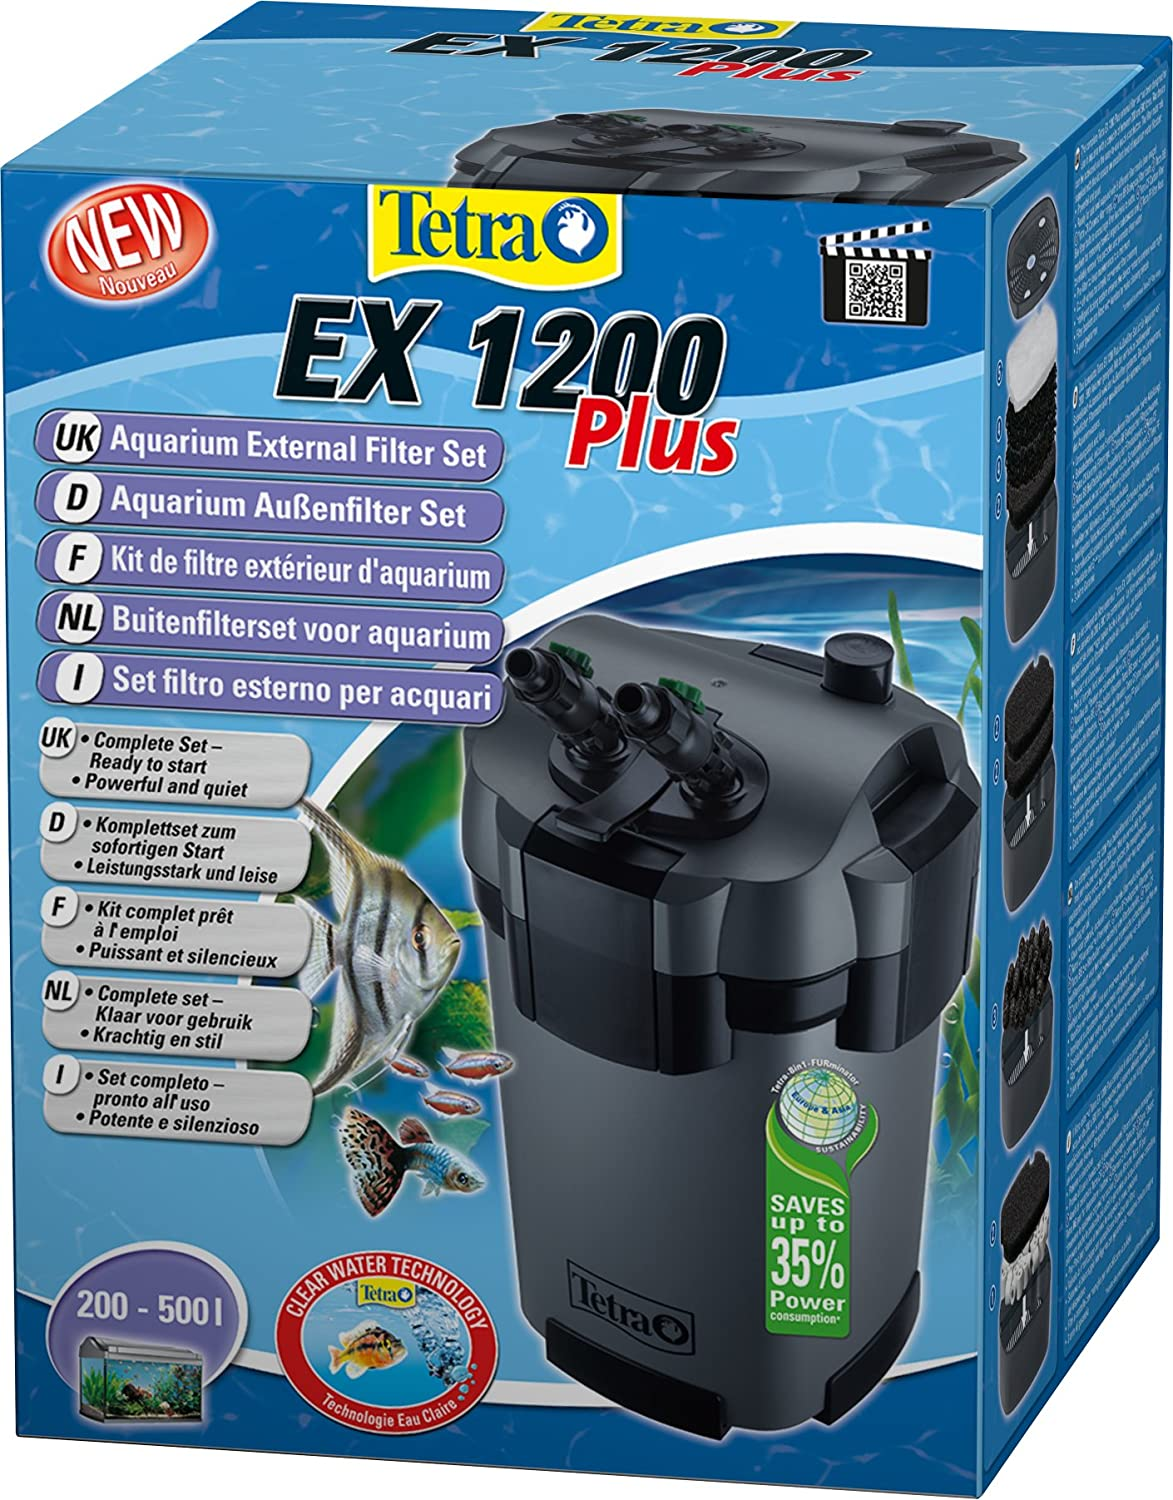 81 hGpfR69L._SL1500_ tetra tec ex 700 external filter amazon co uk pet supplies  at readyjetset.co